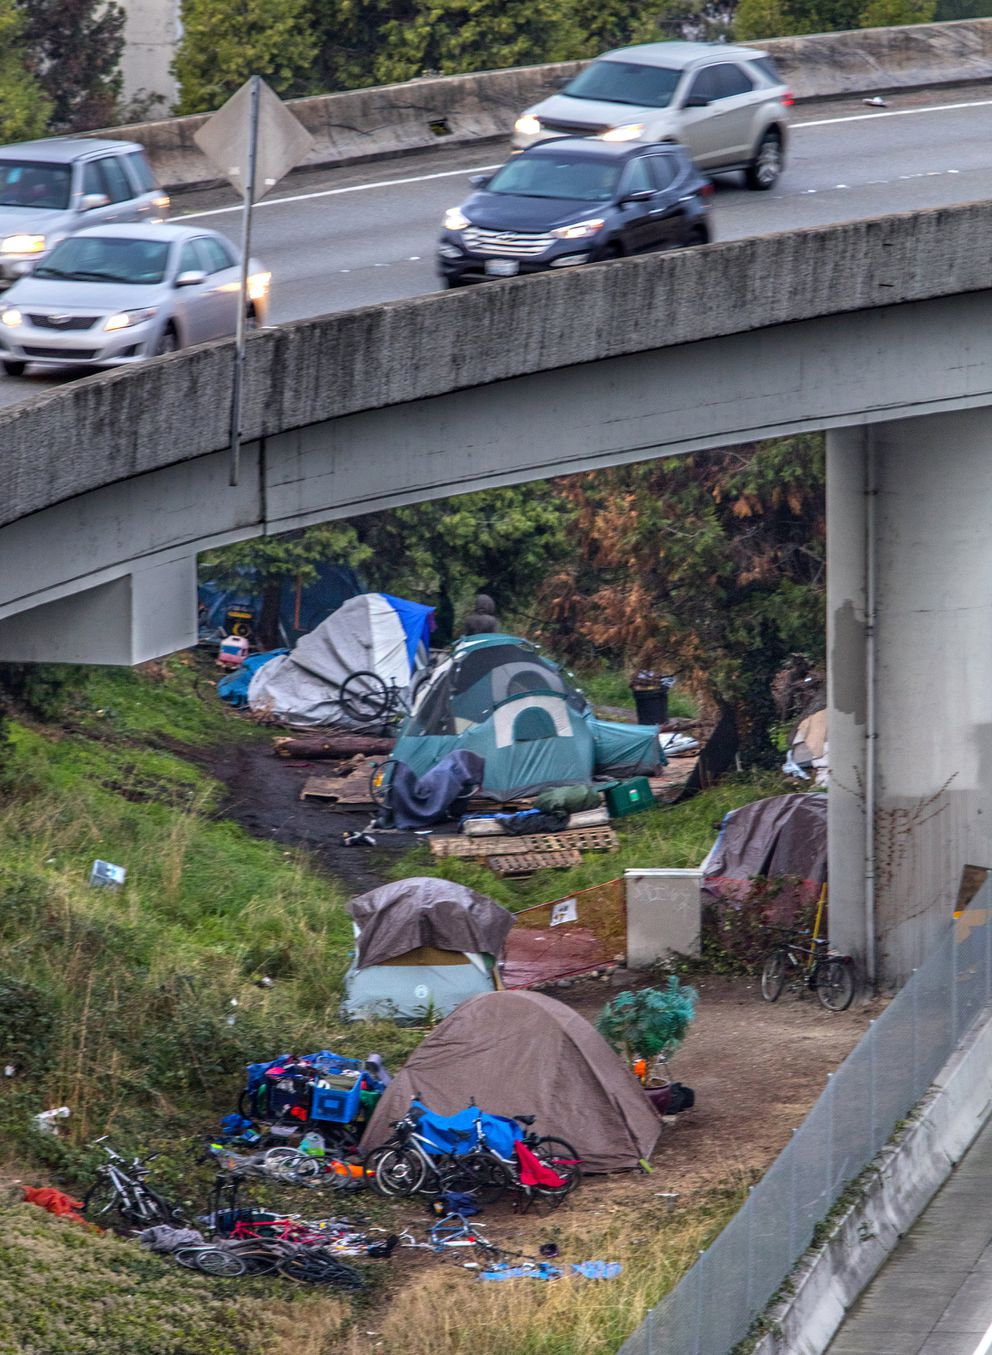 Homeless people camp under an overpass at the interchange of Interstate 5 and I-90 in Seattle on Oct. 23, 2015. (Steve Ringman / The Seattle Times / TNS file)